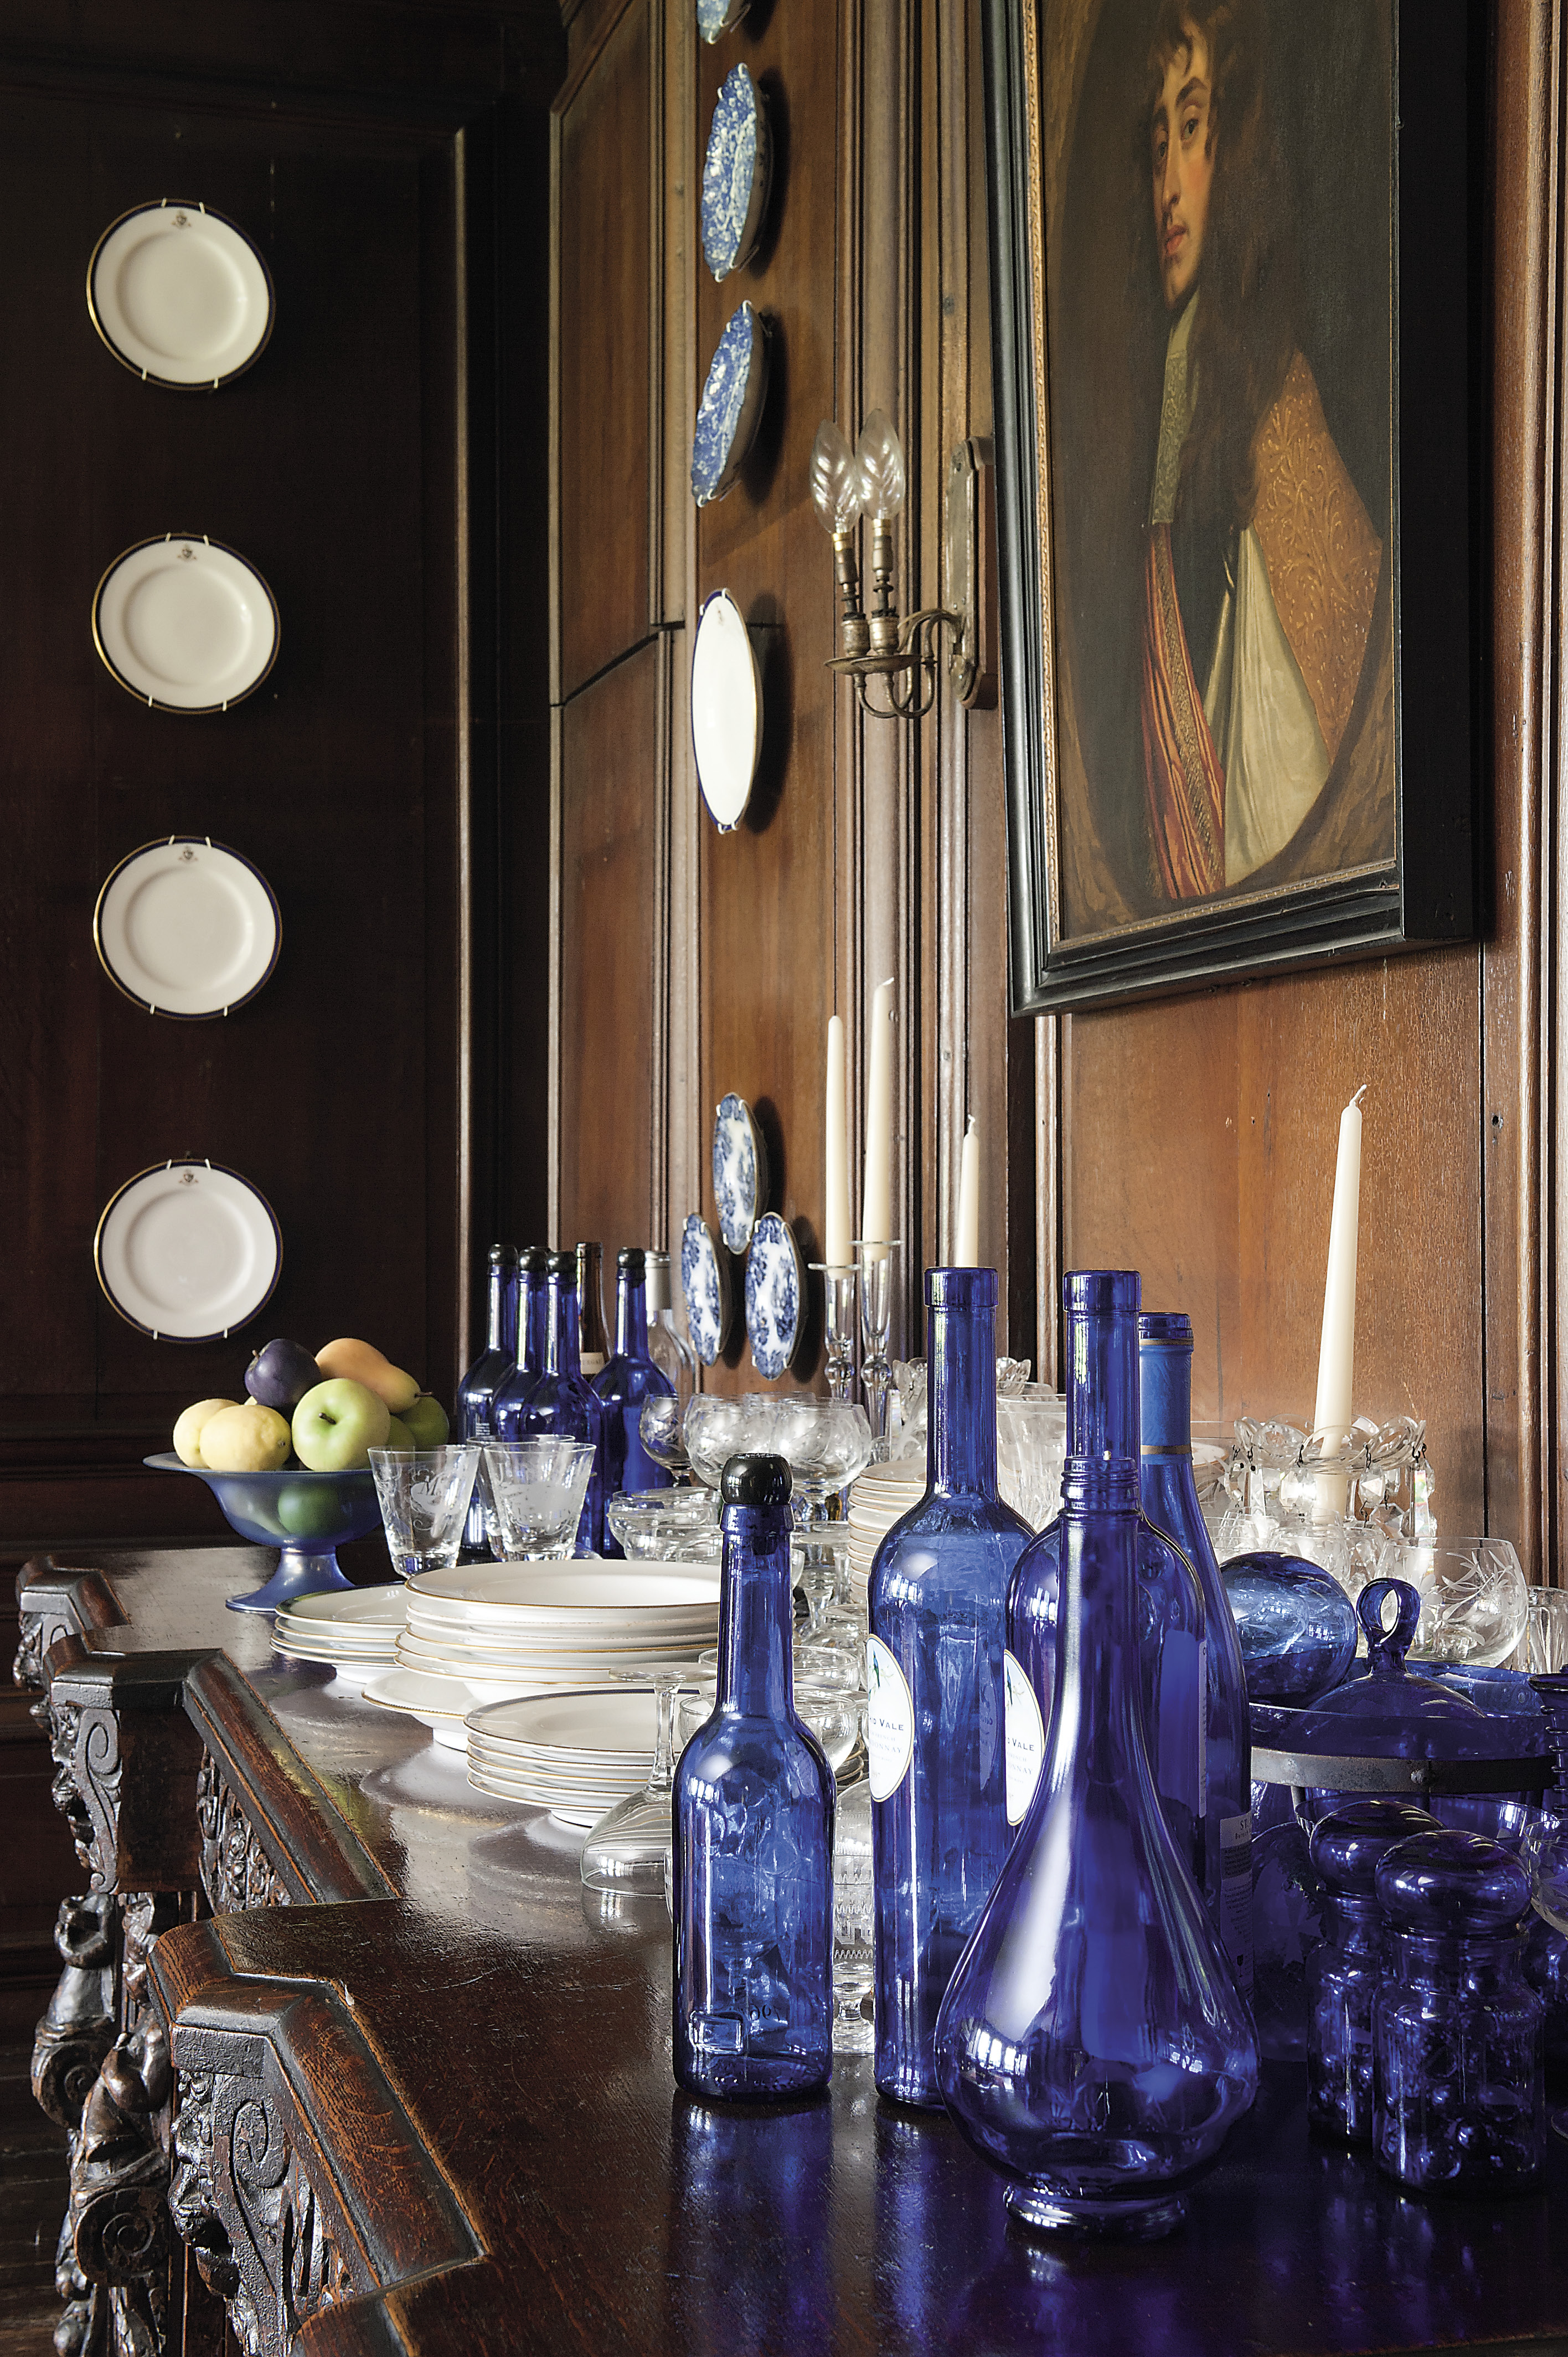 Beneath a portrait of James II when he was the Duke of York, a florid Victorian sideboard supports a white china dinner service and cobalt blue glass